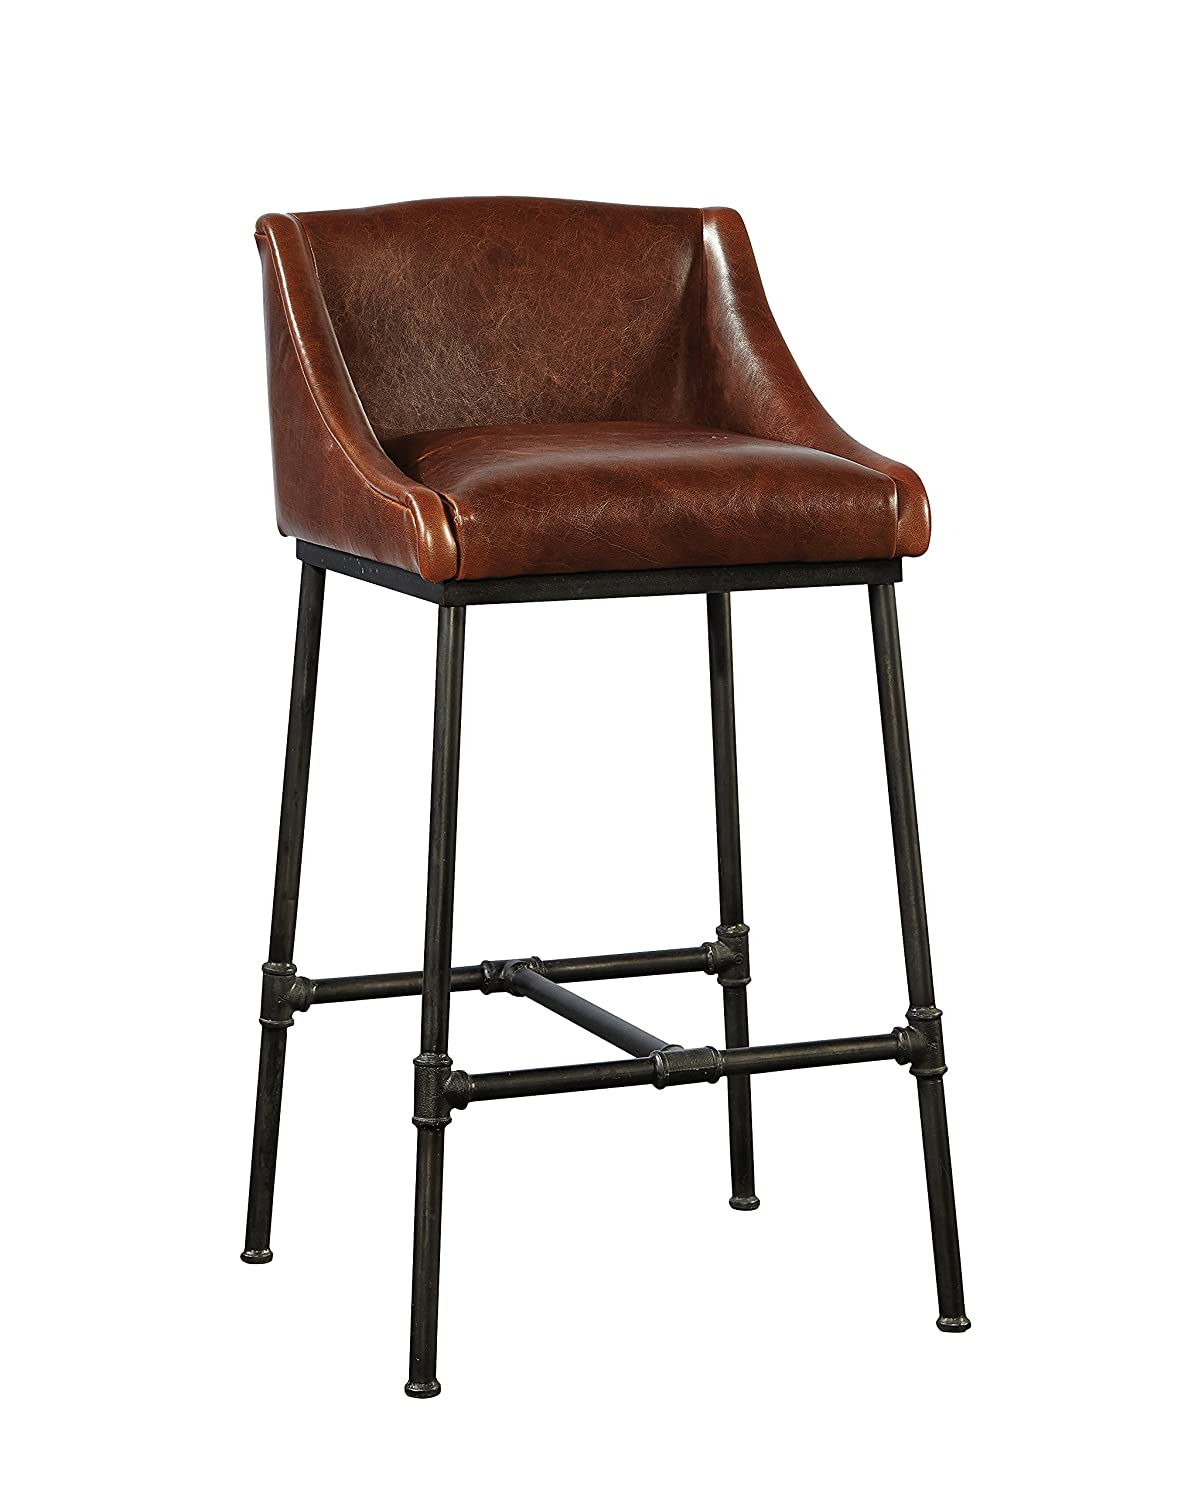 Fine Amazon Com Sloane Elliot Se0039 Harvey Leather Bar Stool Gmtry Best Dining Table And Chair Ideas Images Gmtryco